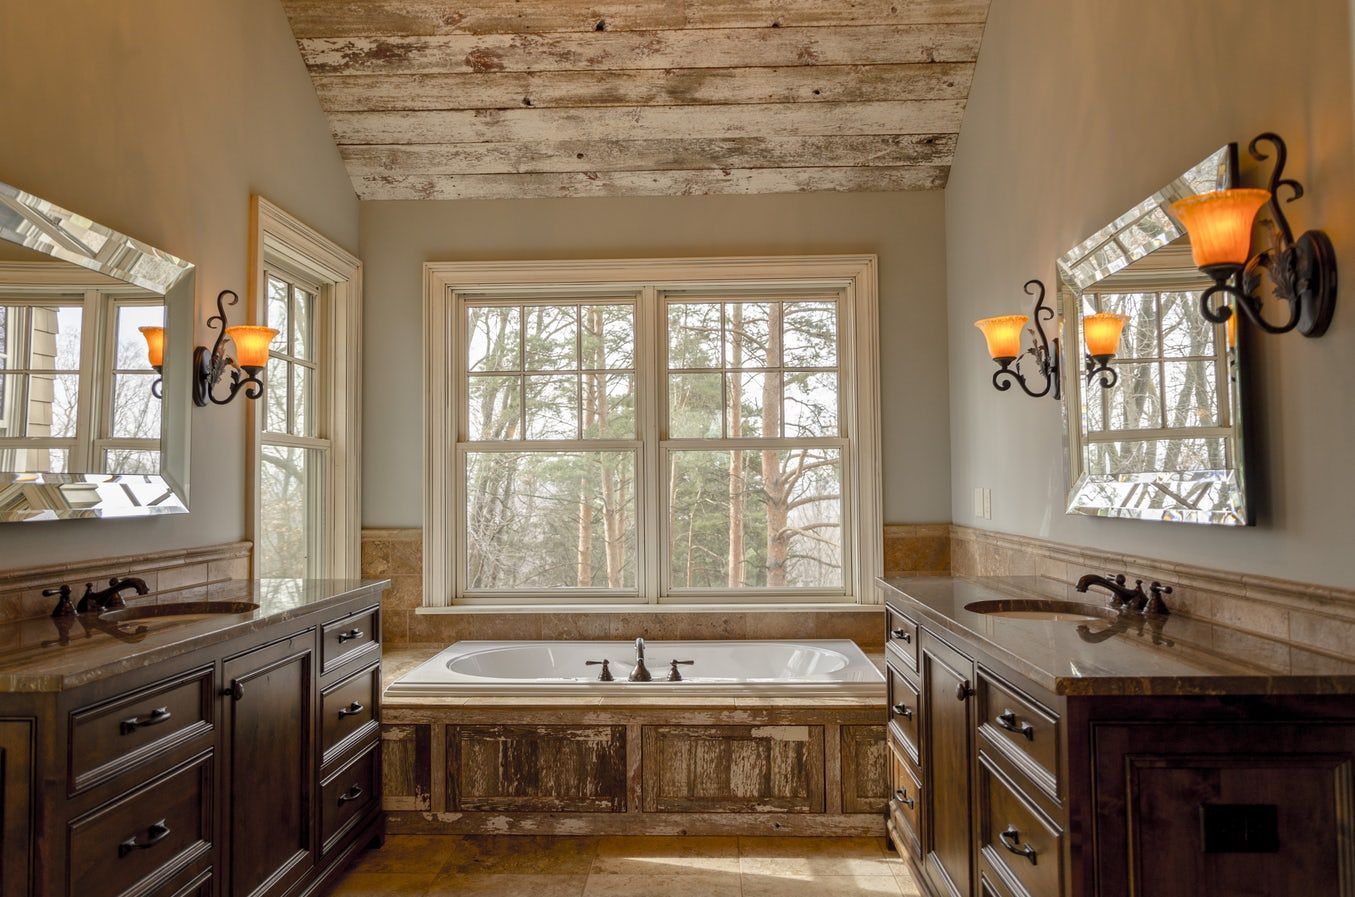 How To Save Money On Your Bathroom Remodel Small Bathroom Remodel Bathrooms Remodel Bathroom Design